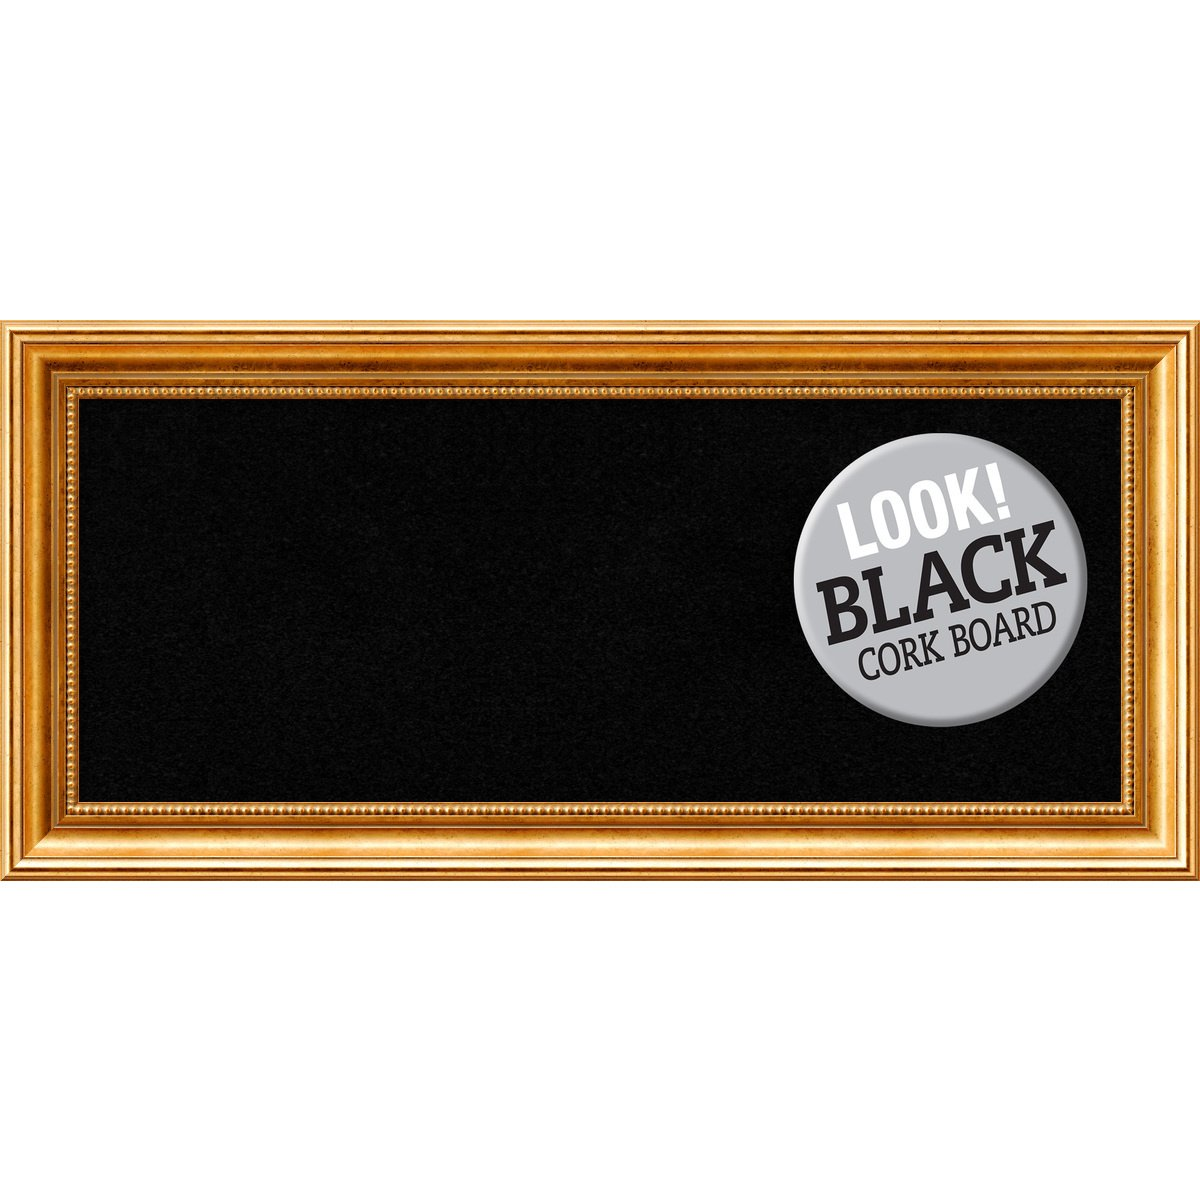 Amanti Art Framed Black Cork Board Townhouse Gold: Outer Size 34 x 16'', Panel